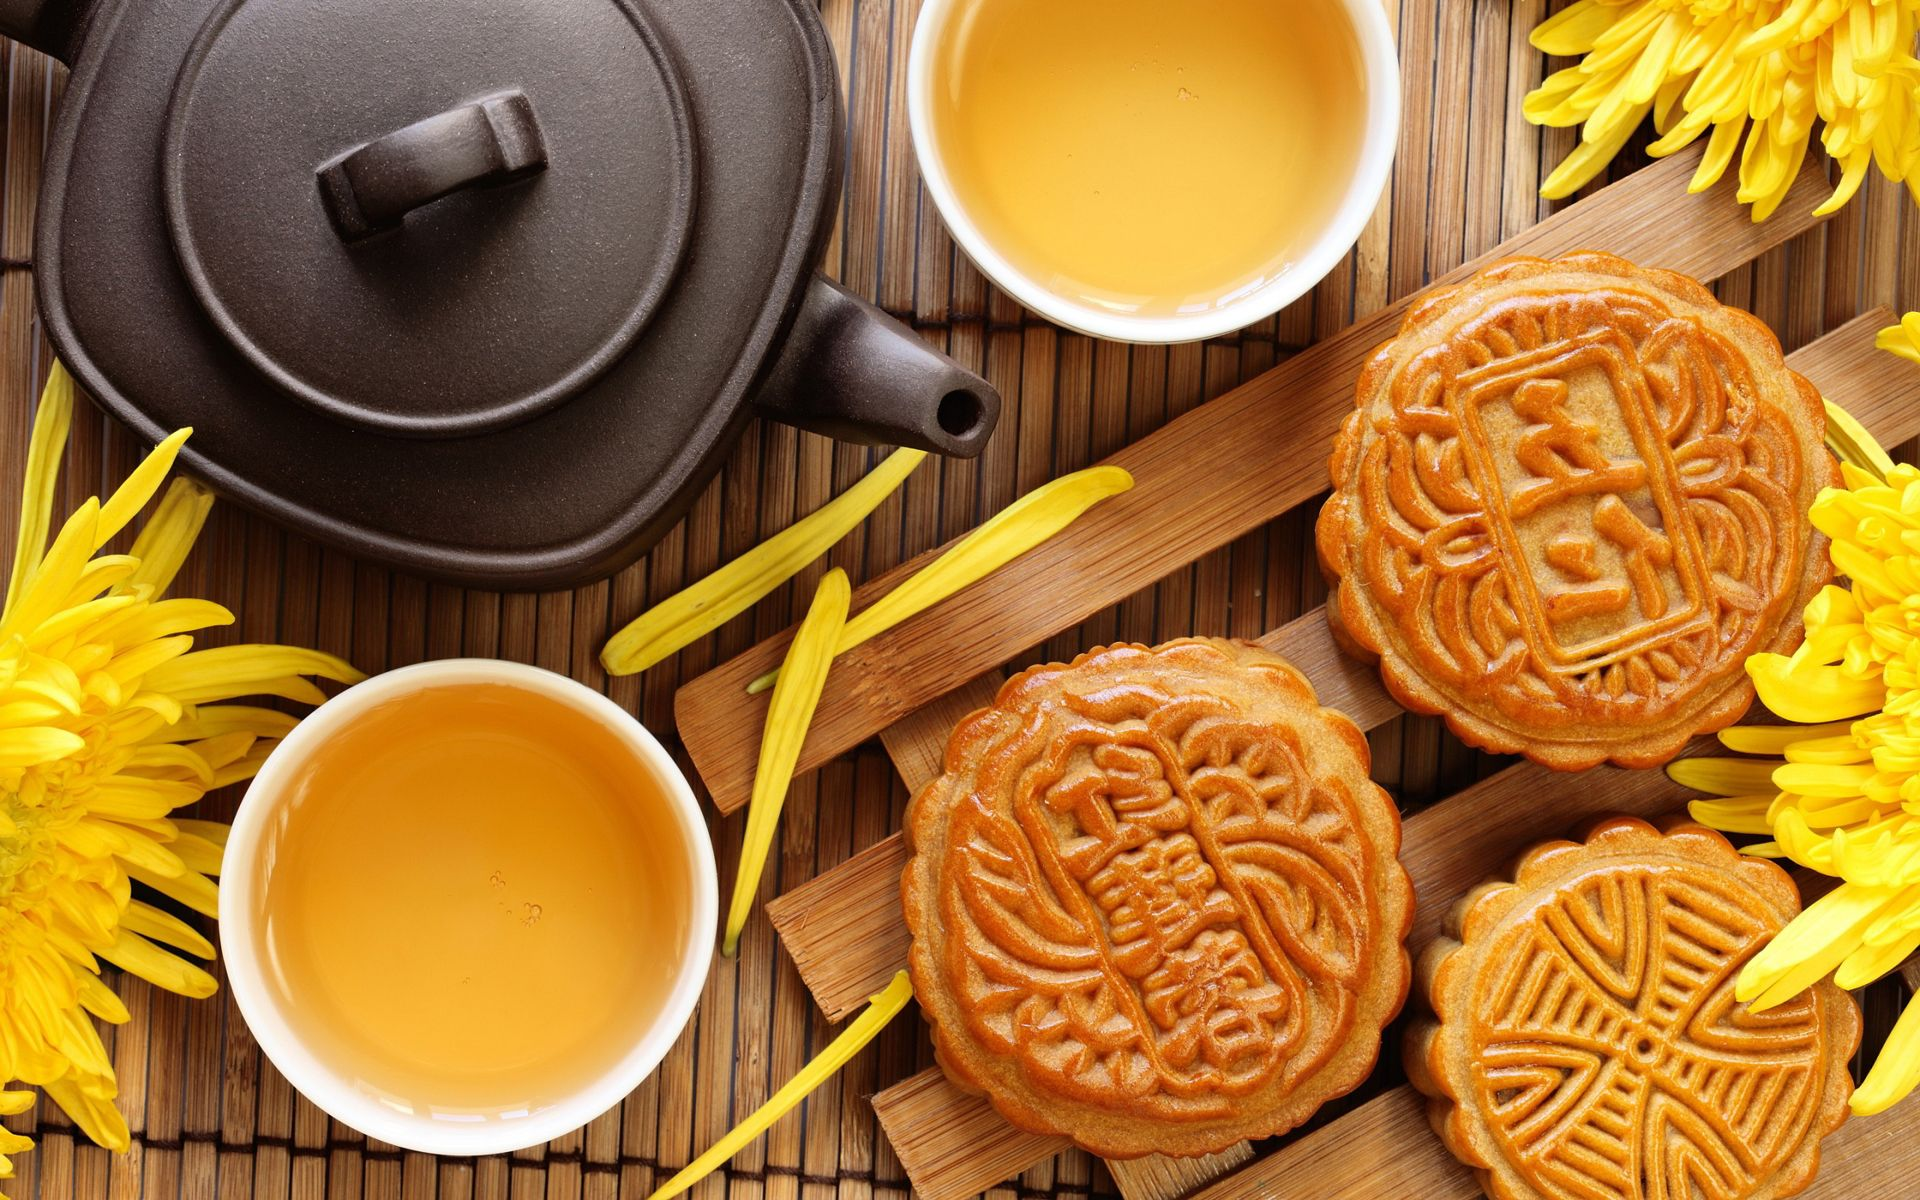 Moon cake symbolizes Luck, Happiness, Health and Wealth on the Mid-Autumn festival